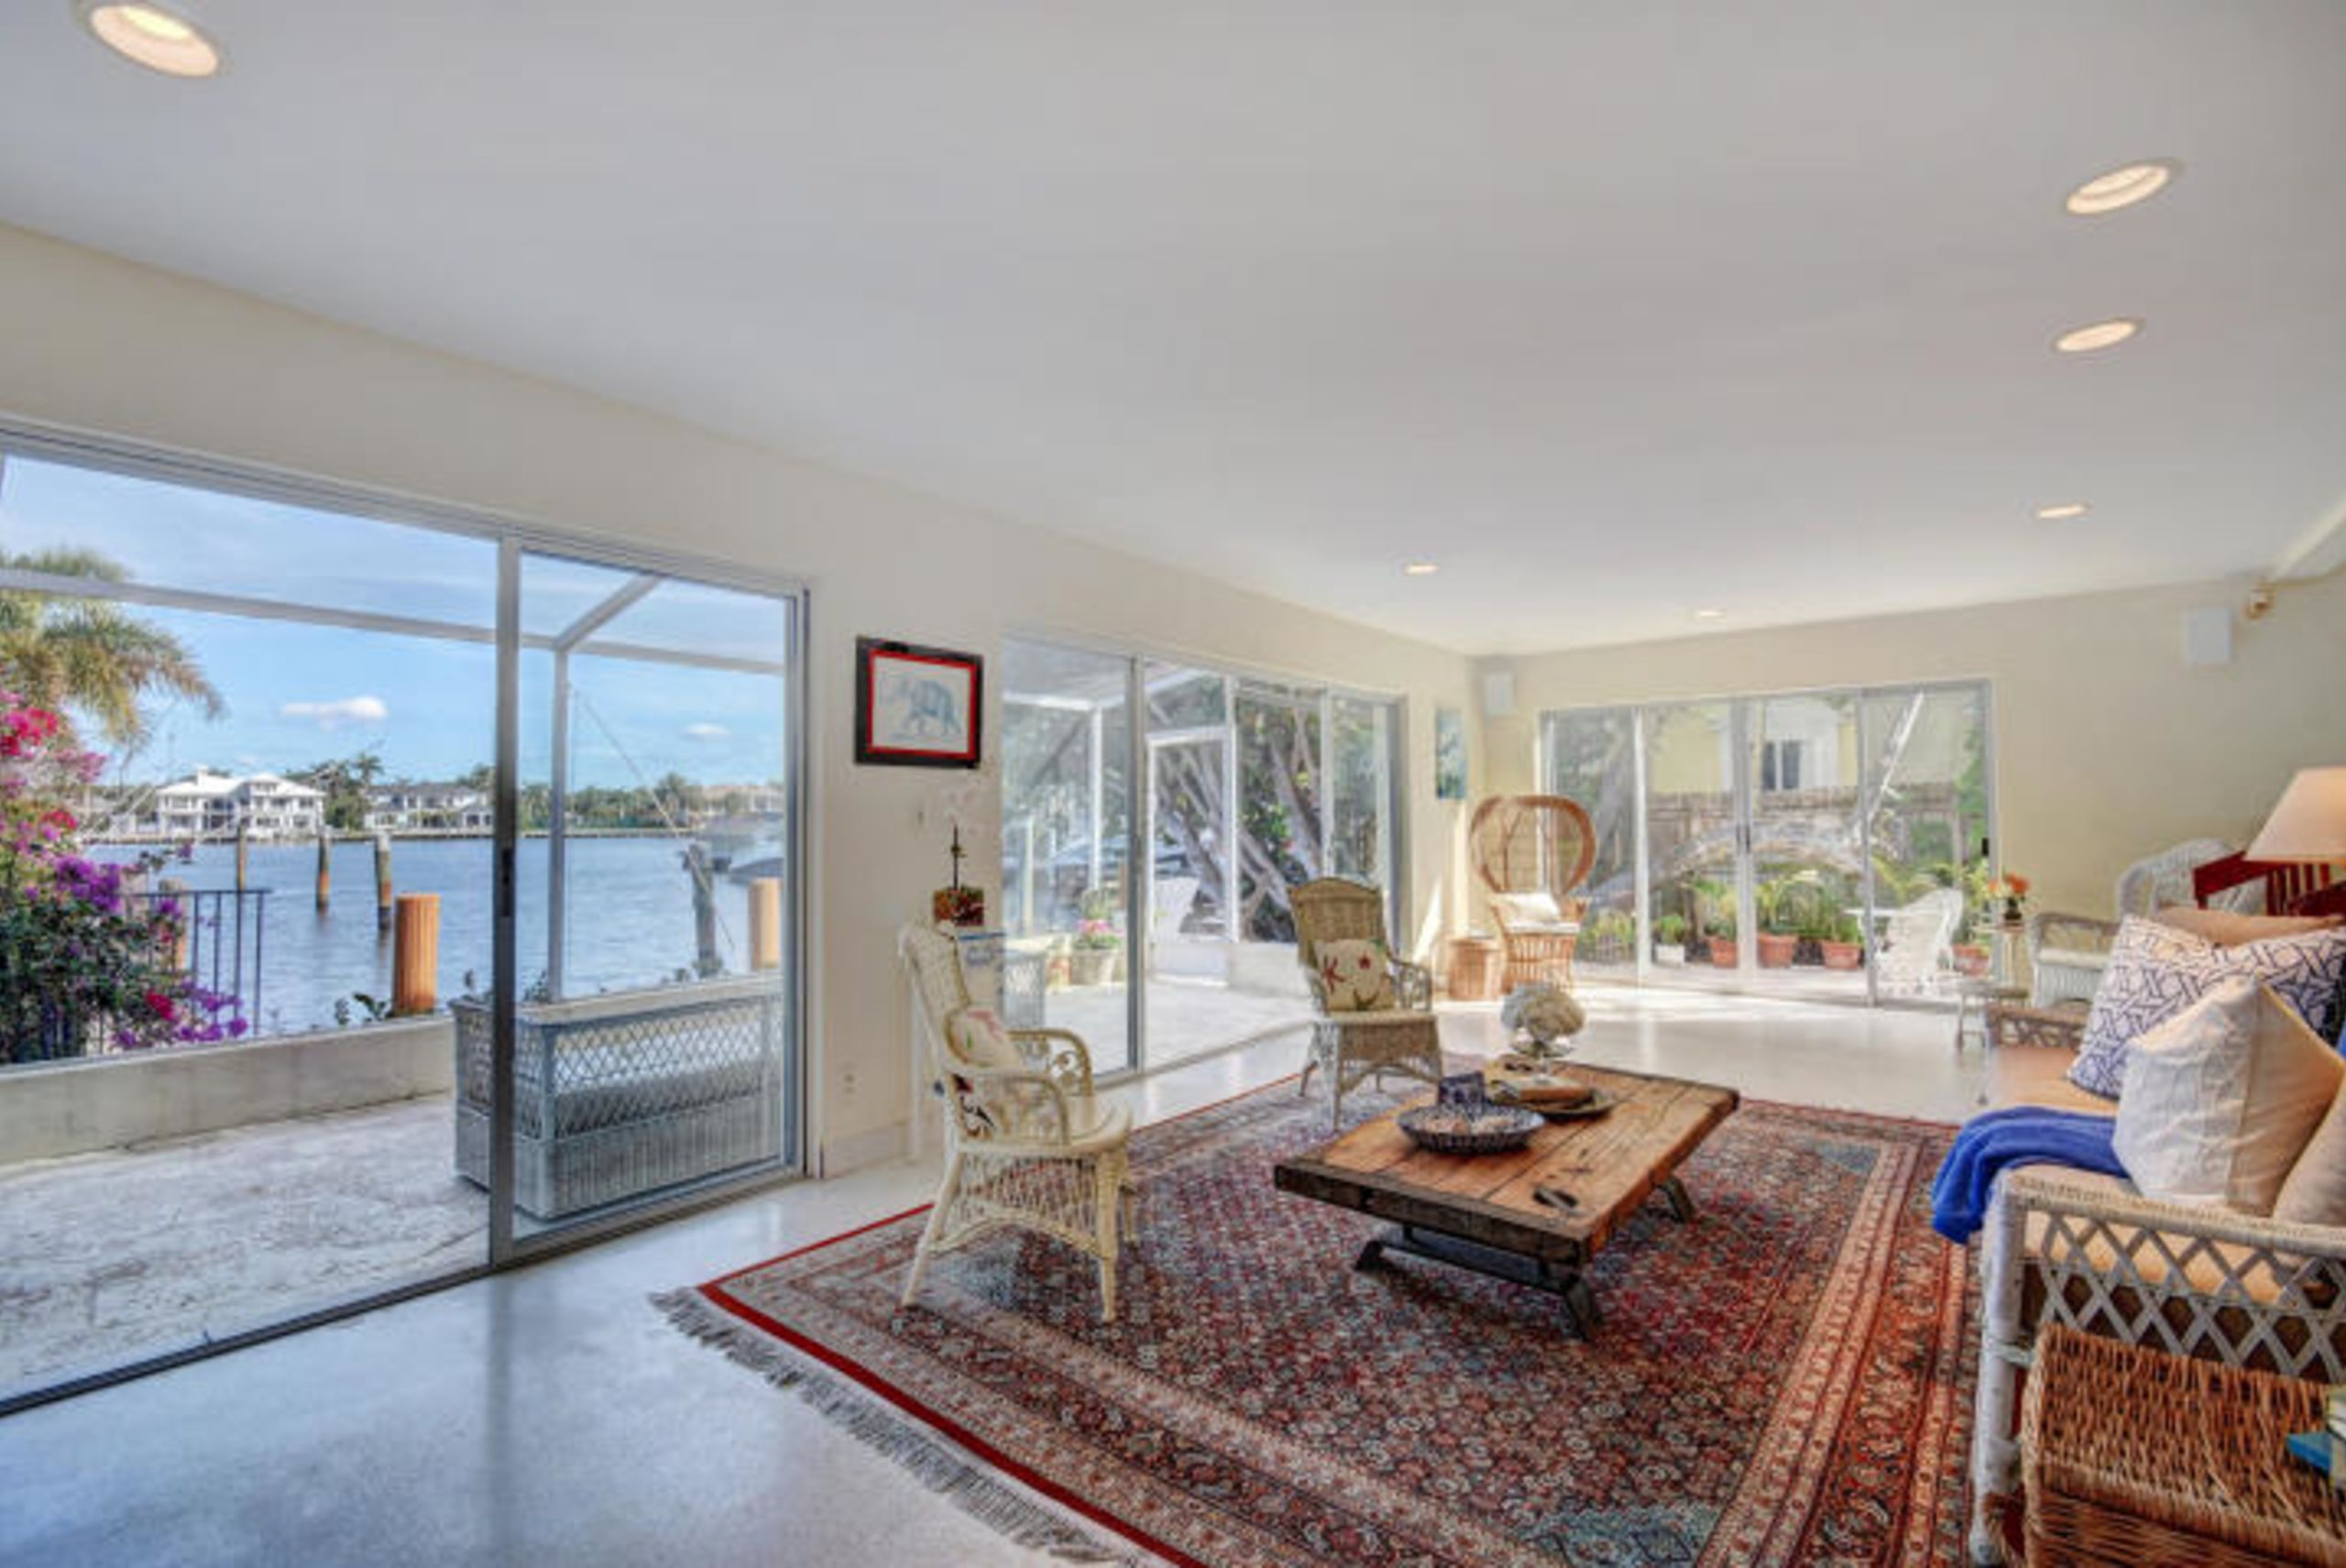 CLOSED, Intra-Coastal Home, Listed at $1,189,000